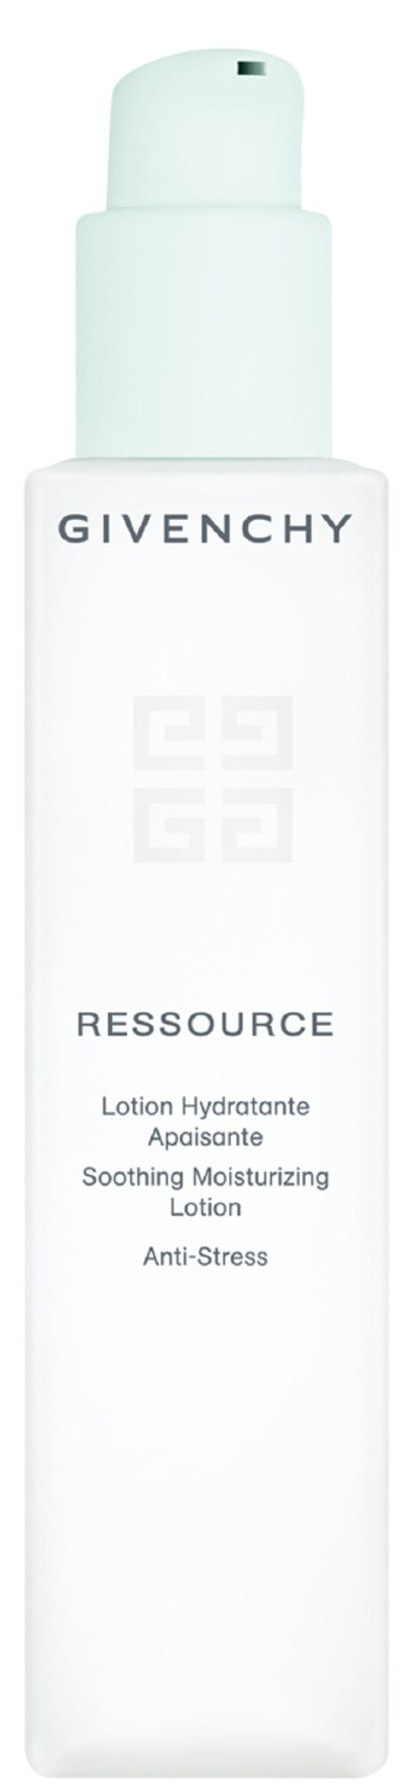 Givenchy Ressource Soothing Moisturising Lotion